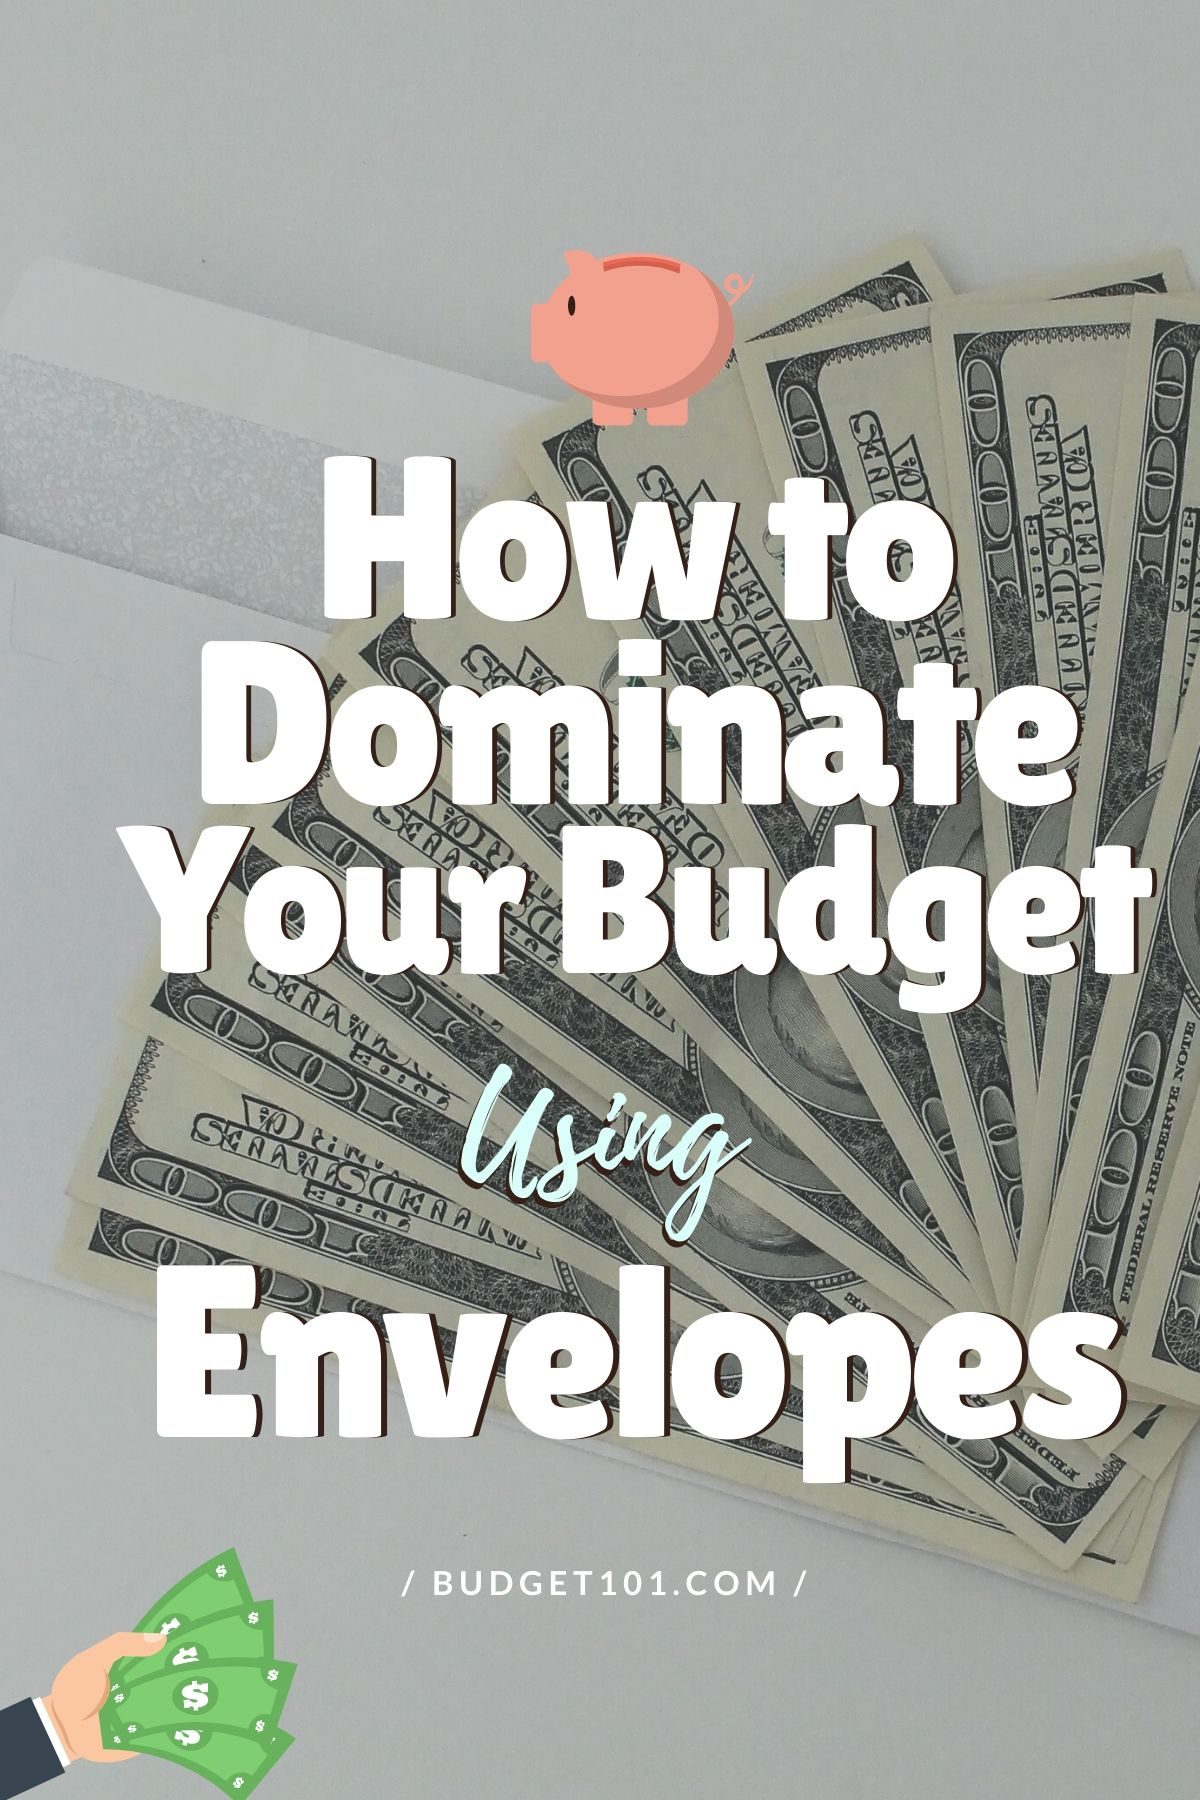 Take control of your finances & dominate your budget with this simple, effective Envelope Budget system. This is by far the easiest  budgeting strategy we've ever used.  #Budget101 #Budgeting #EnvelopeBudget #Finances #SavingMoney #2020 #EnvelopeBudget2020 #FinancialGoals